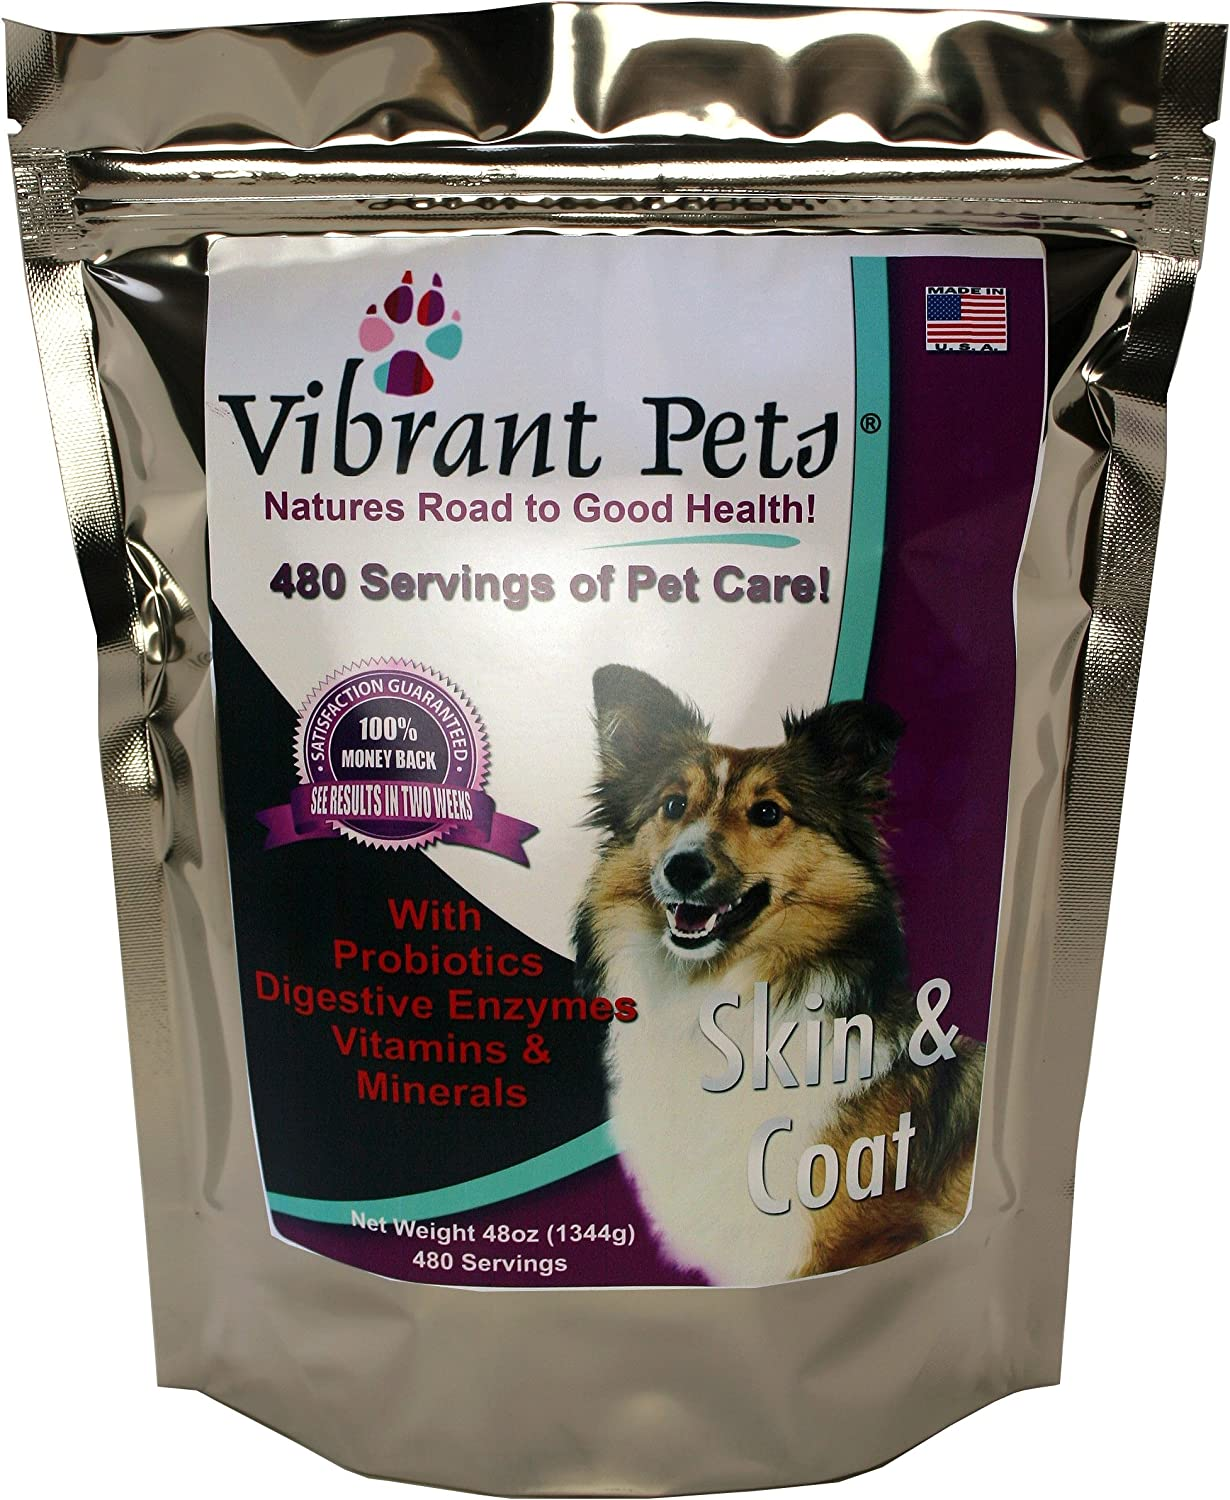 Vibrant Pets Skin and Coat Diet Supplements Original Premium Dog Coat Supplement and Dog Skin Supplement Powder with Probiotics Natural Ingredients 480 Servings 48oz